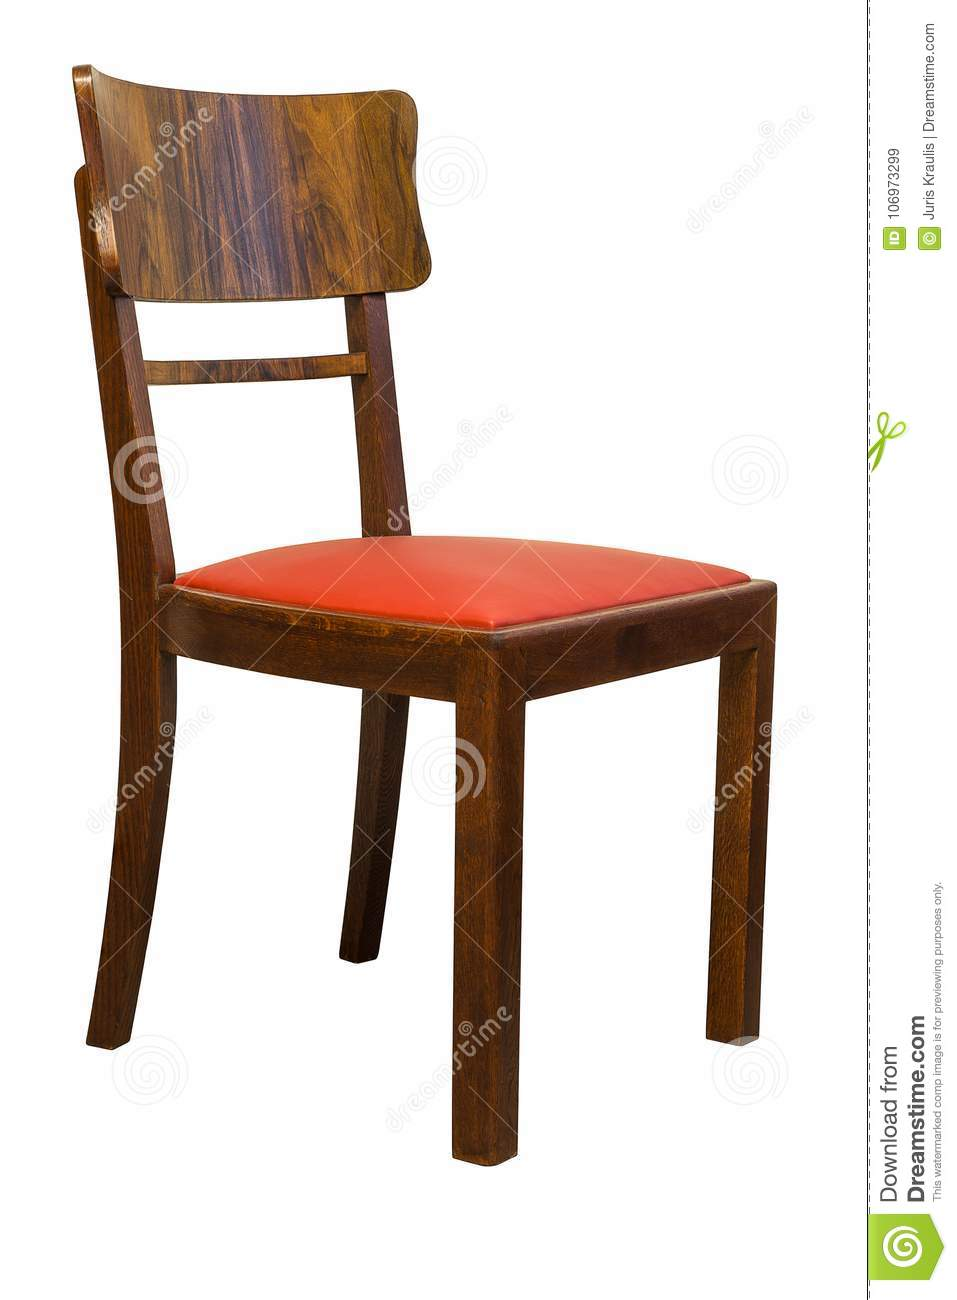 vintage art deco furniture. royalty-free stock photo. download vintage art deco chair isolated on white background furniture o